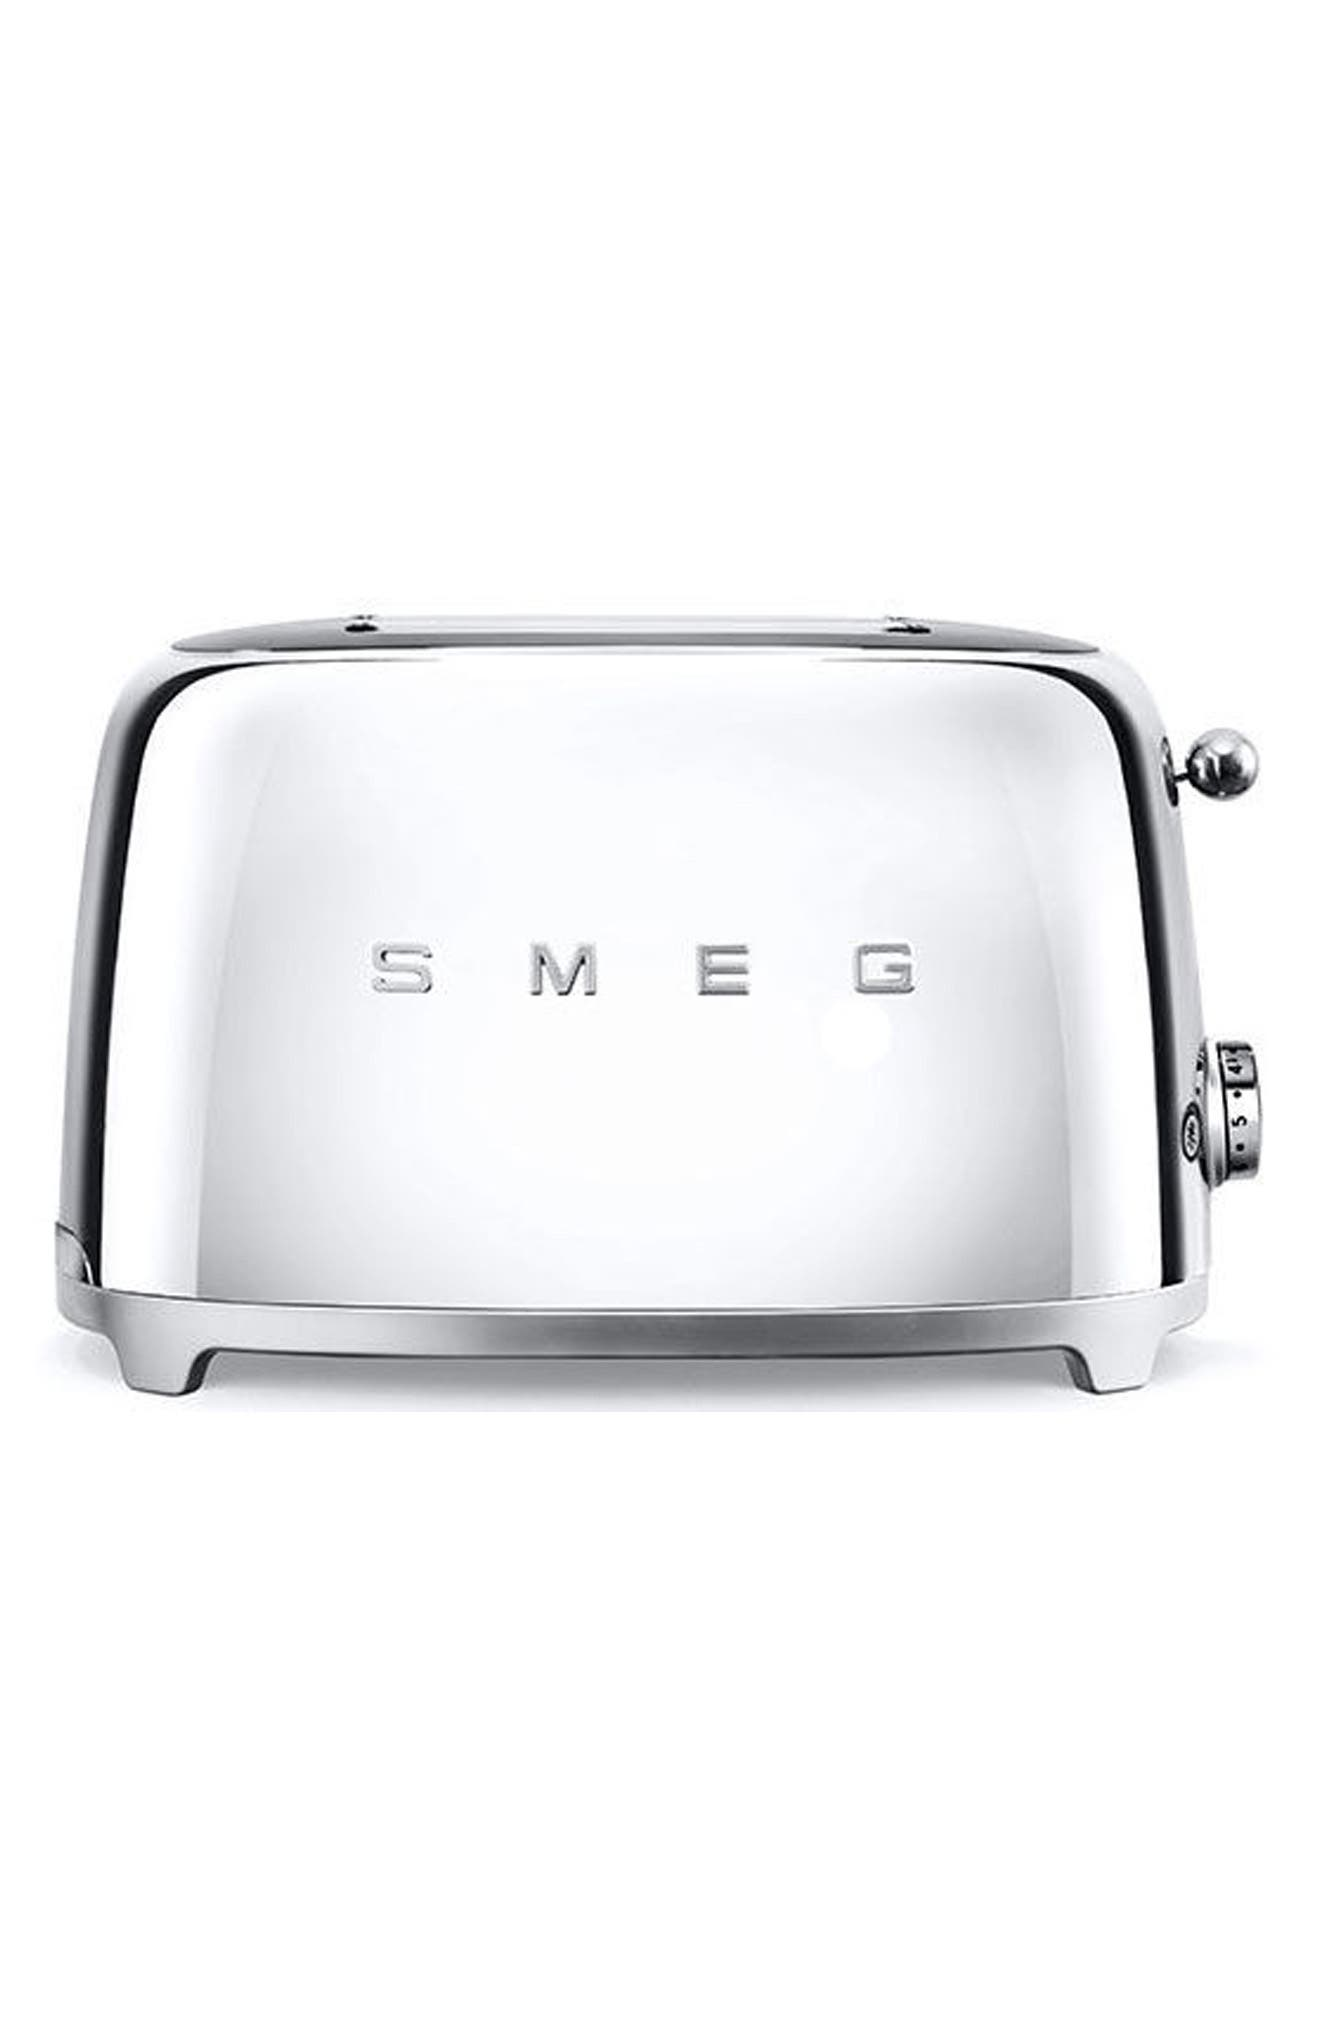 50s Retro Style Two-Slice Toaster,                         Main,                         color, POLISHED STAINLESS STEEL